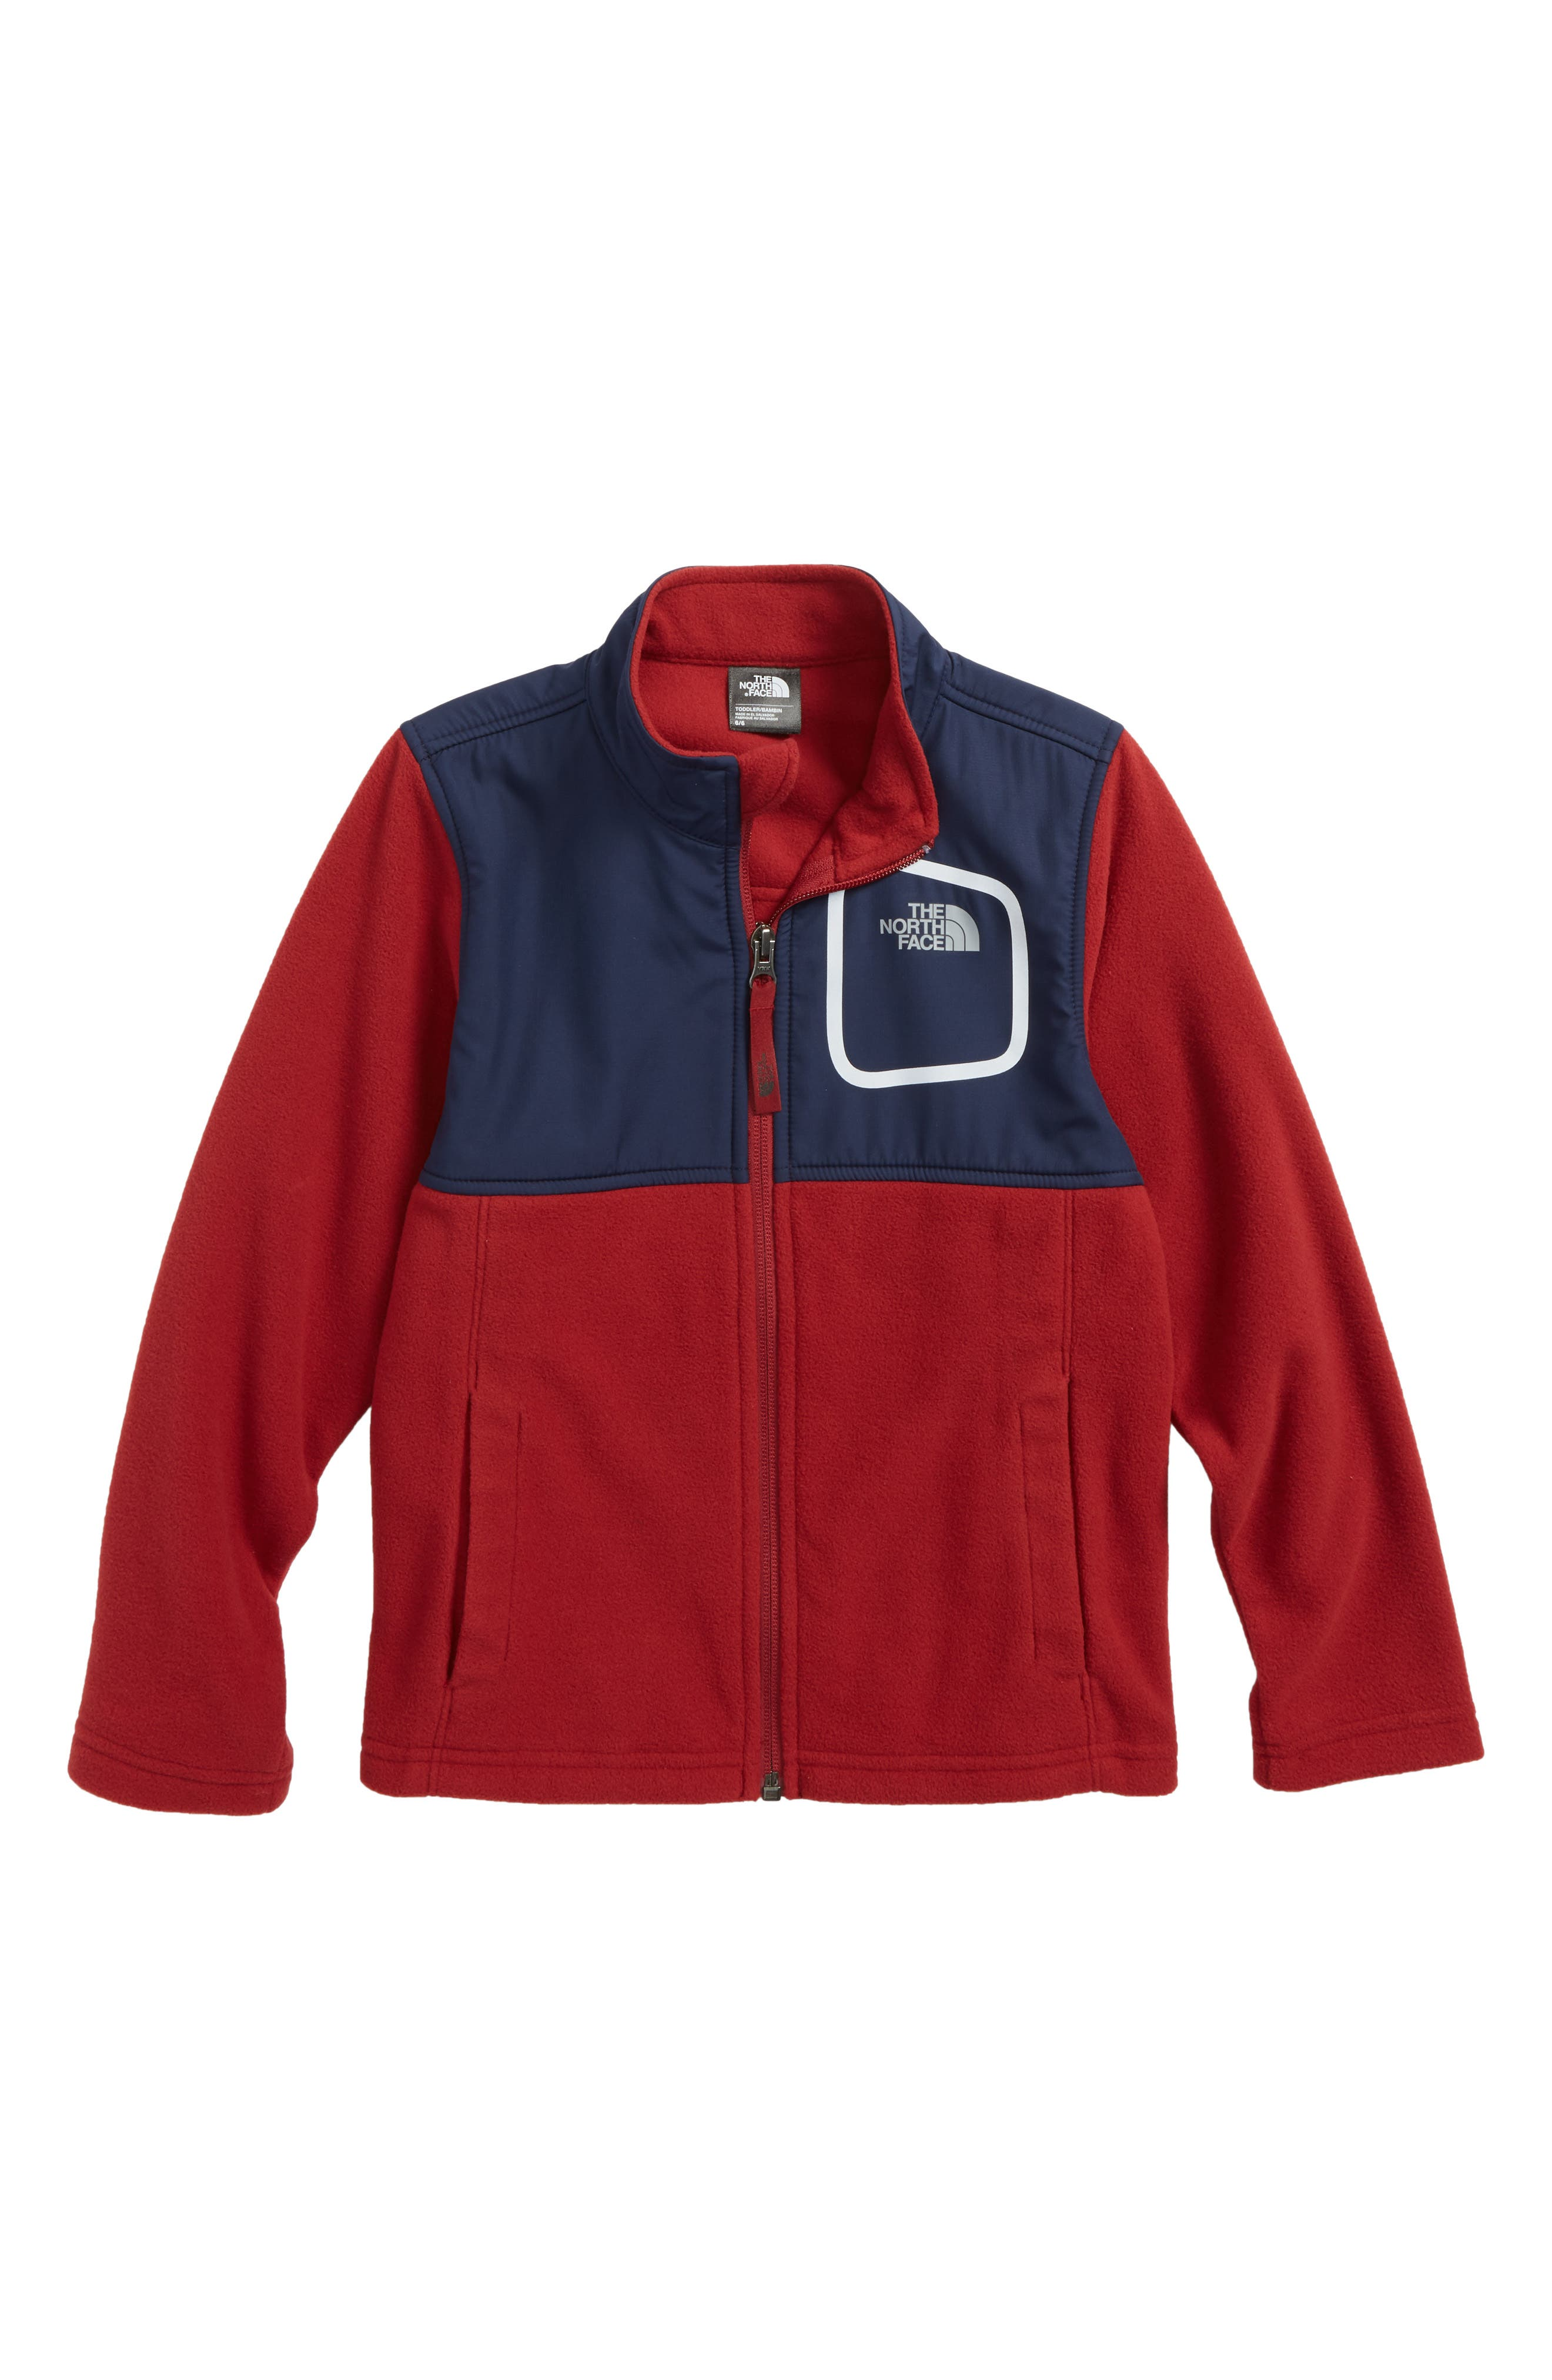 Peril Glacier Microfleece Track Jacket,                             Main thumbnail 1, color,                             Biking Red/ Cosmic Blue